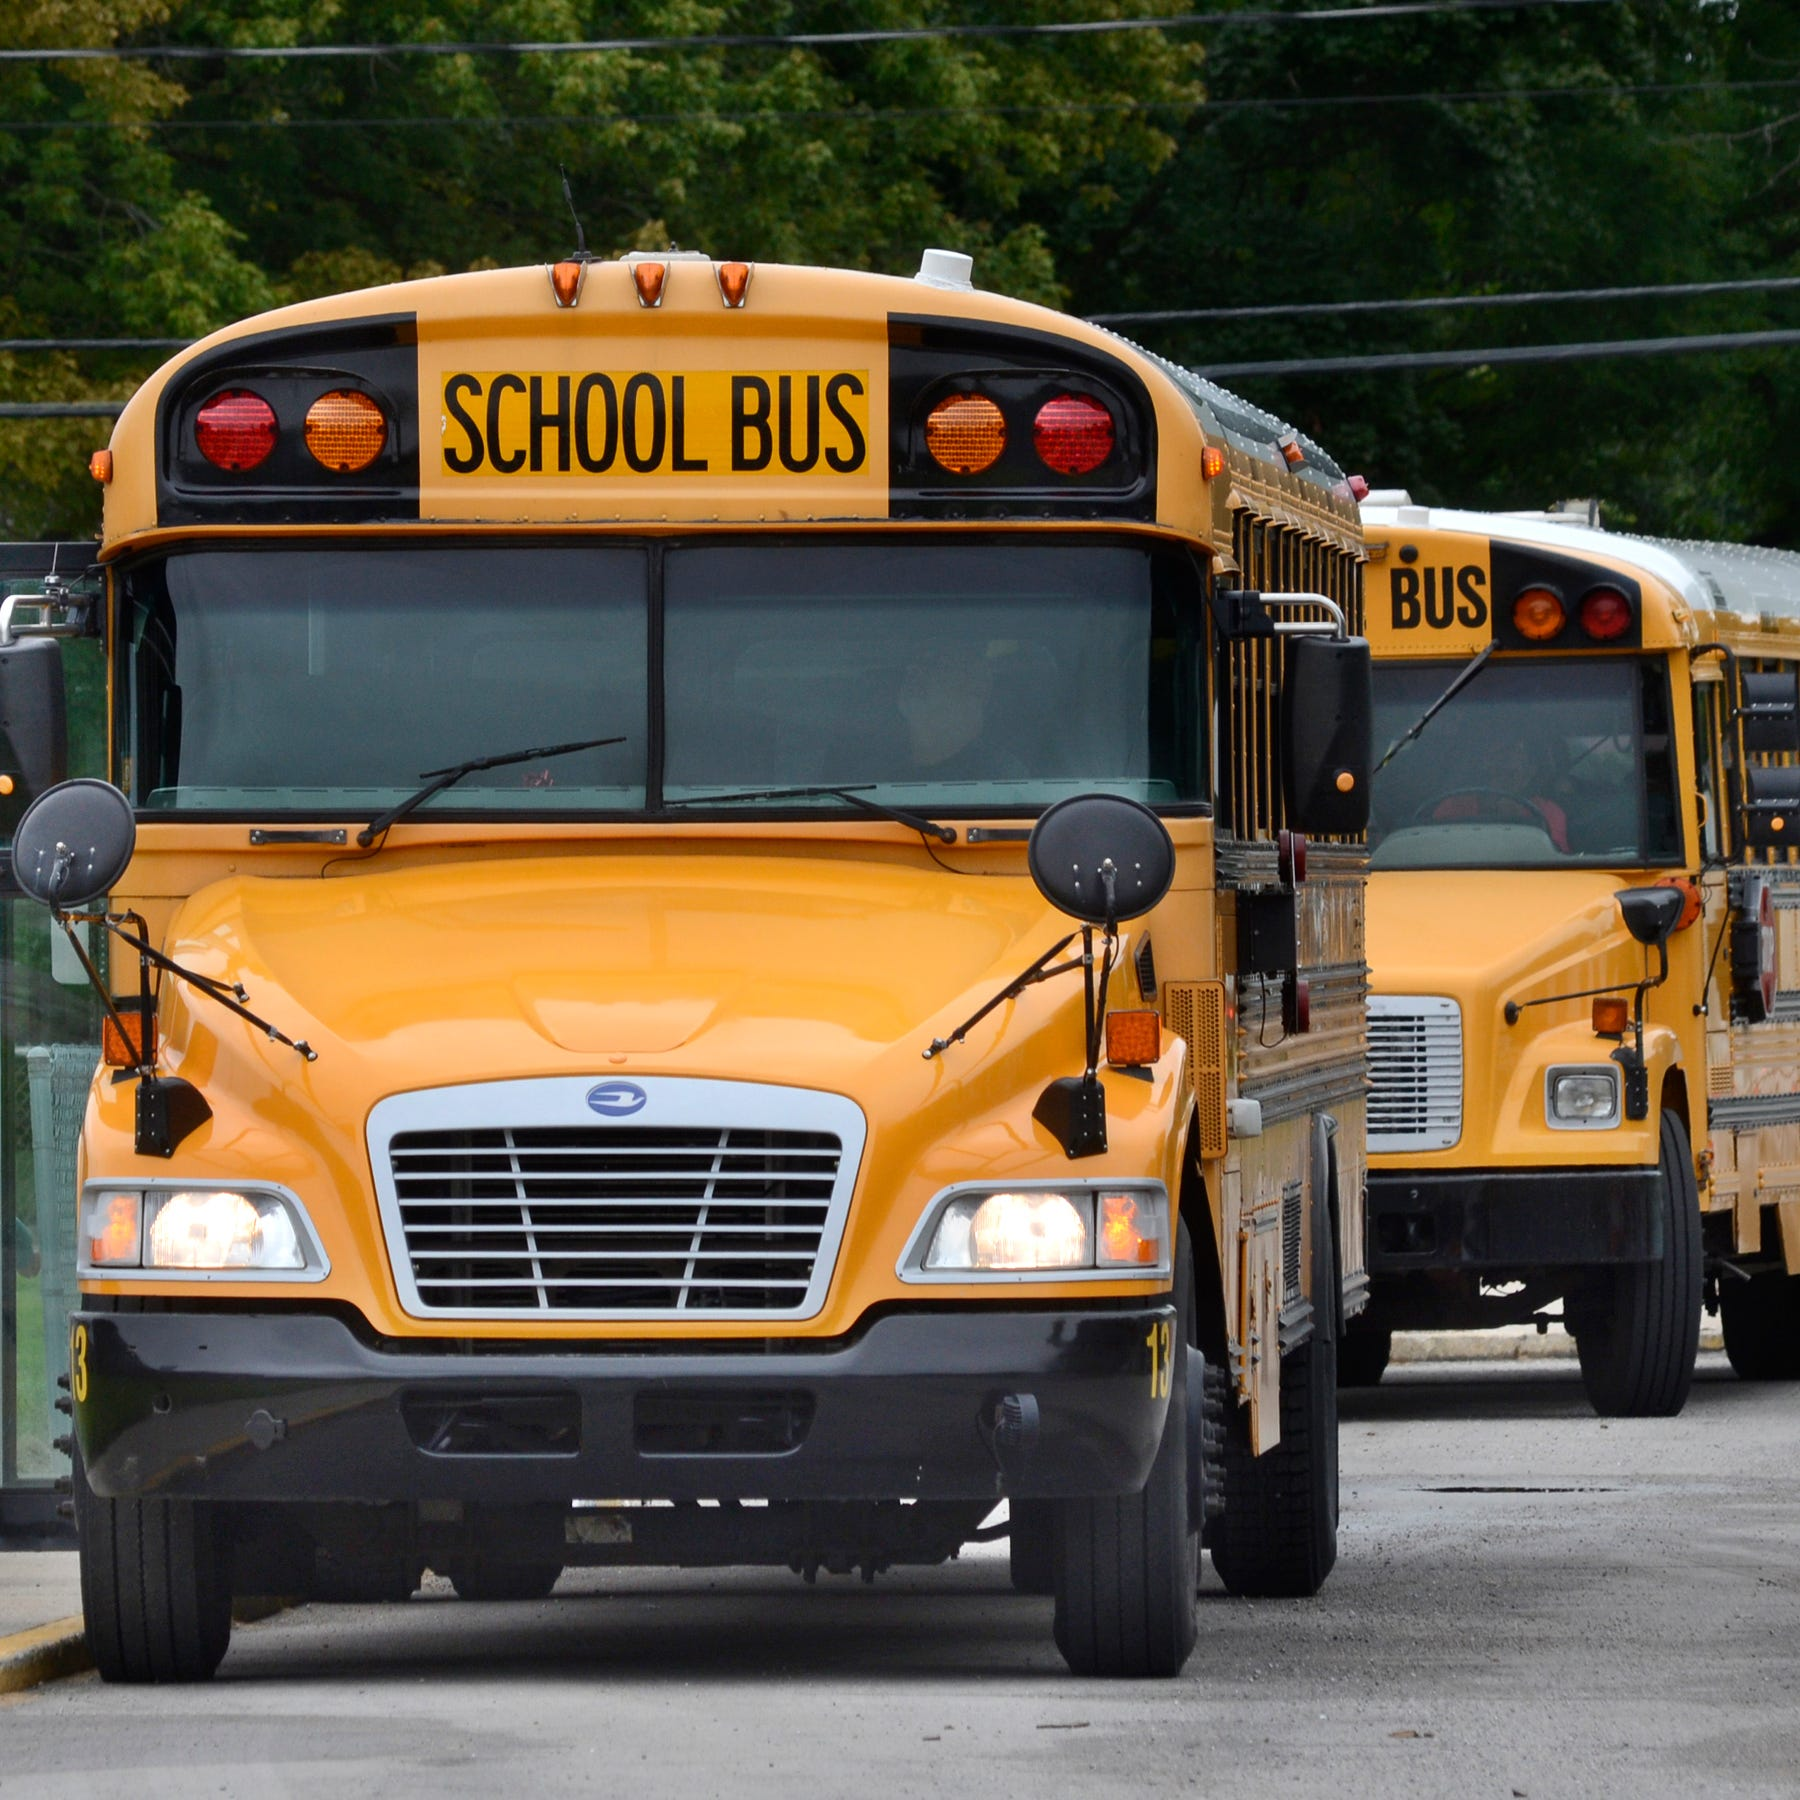 Indiana school bus driver caught on video allegedly allowing kids as young as 11 to drive her vehicle